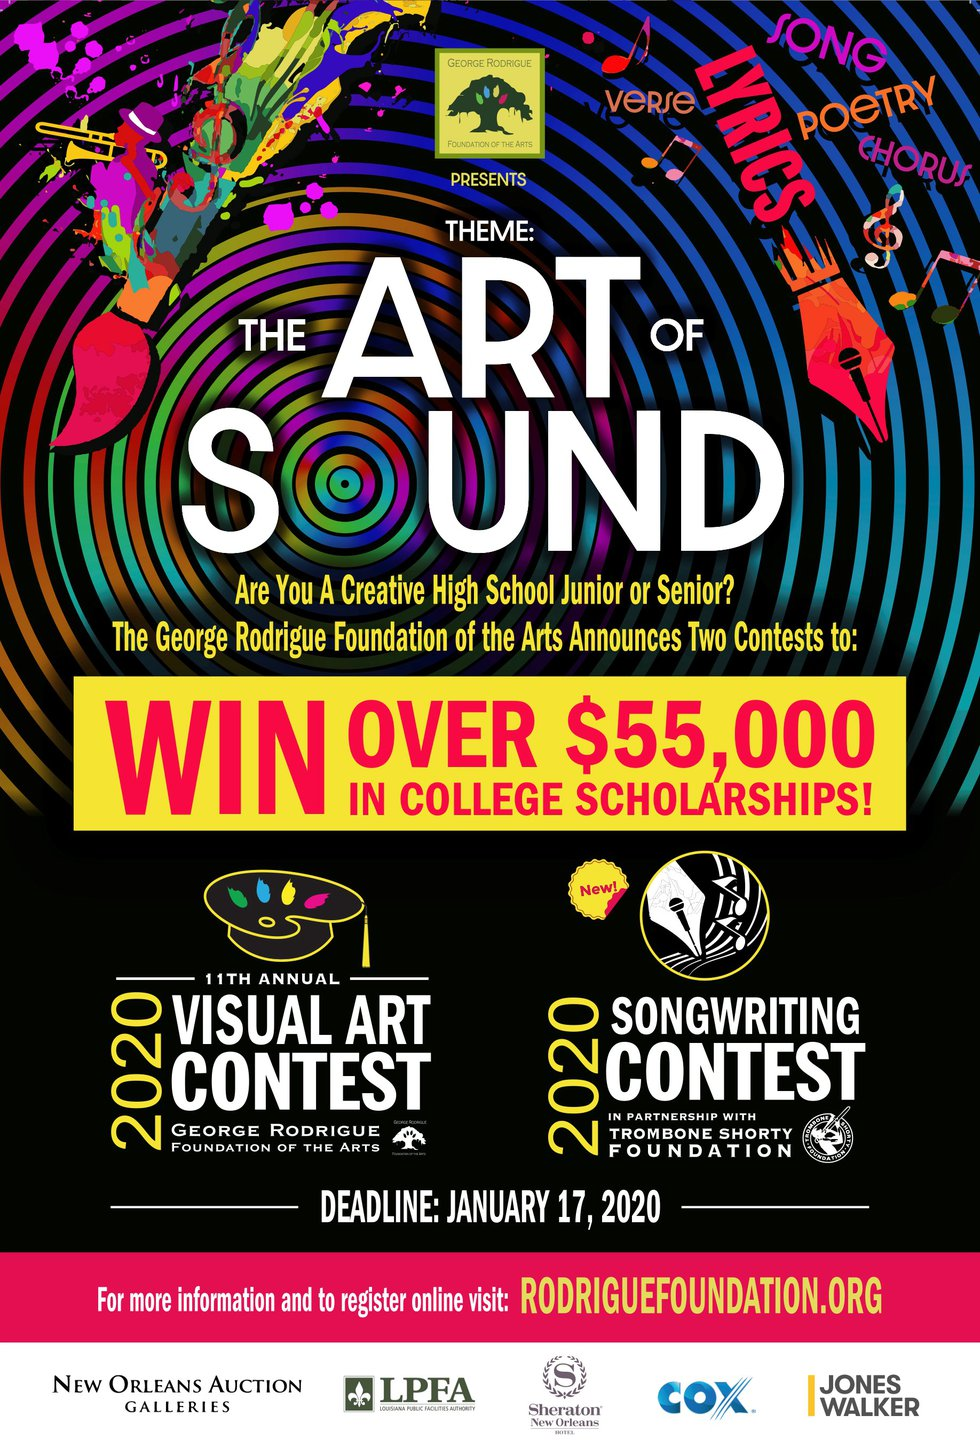 Three young songwriters will be awarded $10,000 in college scholarships (art contest will have...